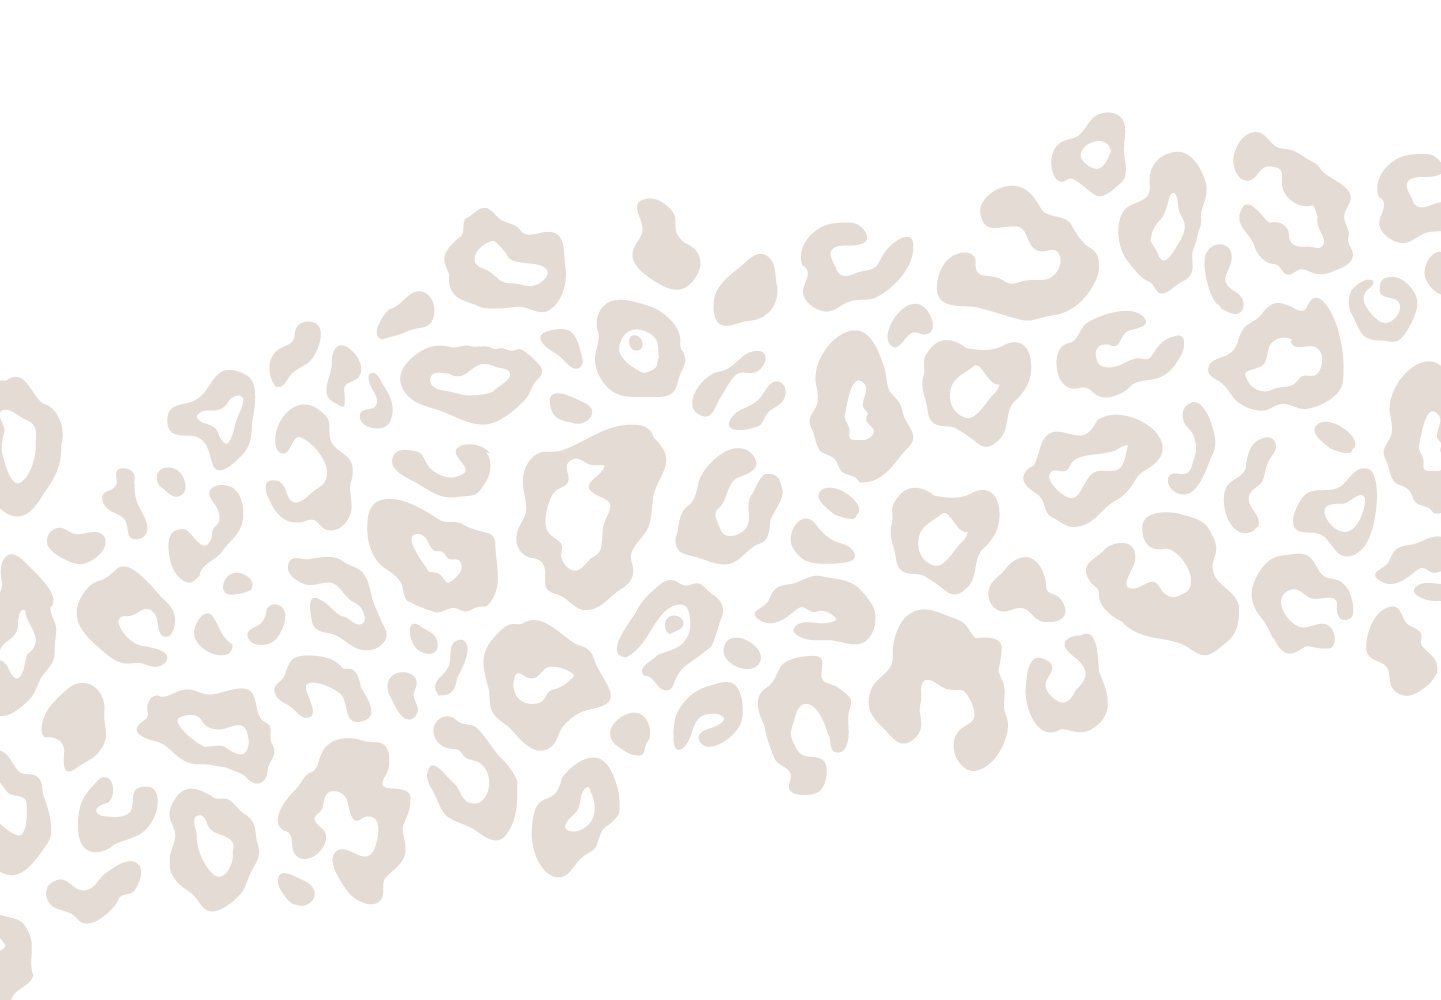 Decorative cheeta pattern